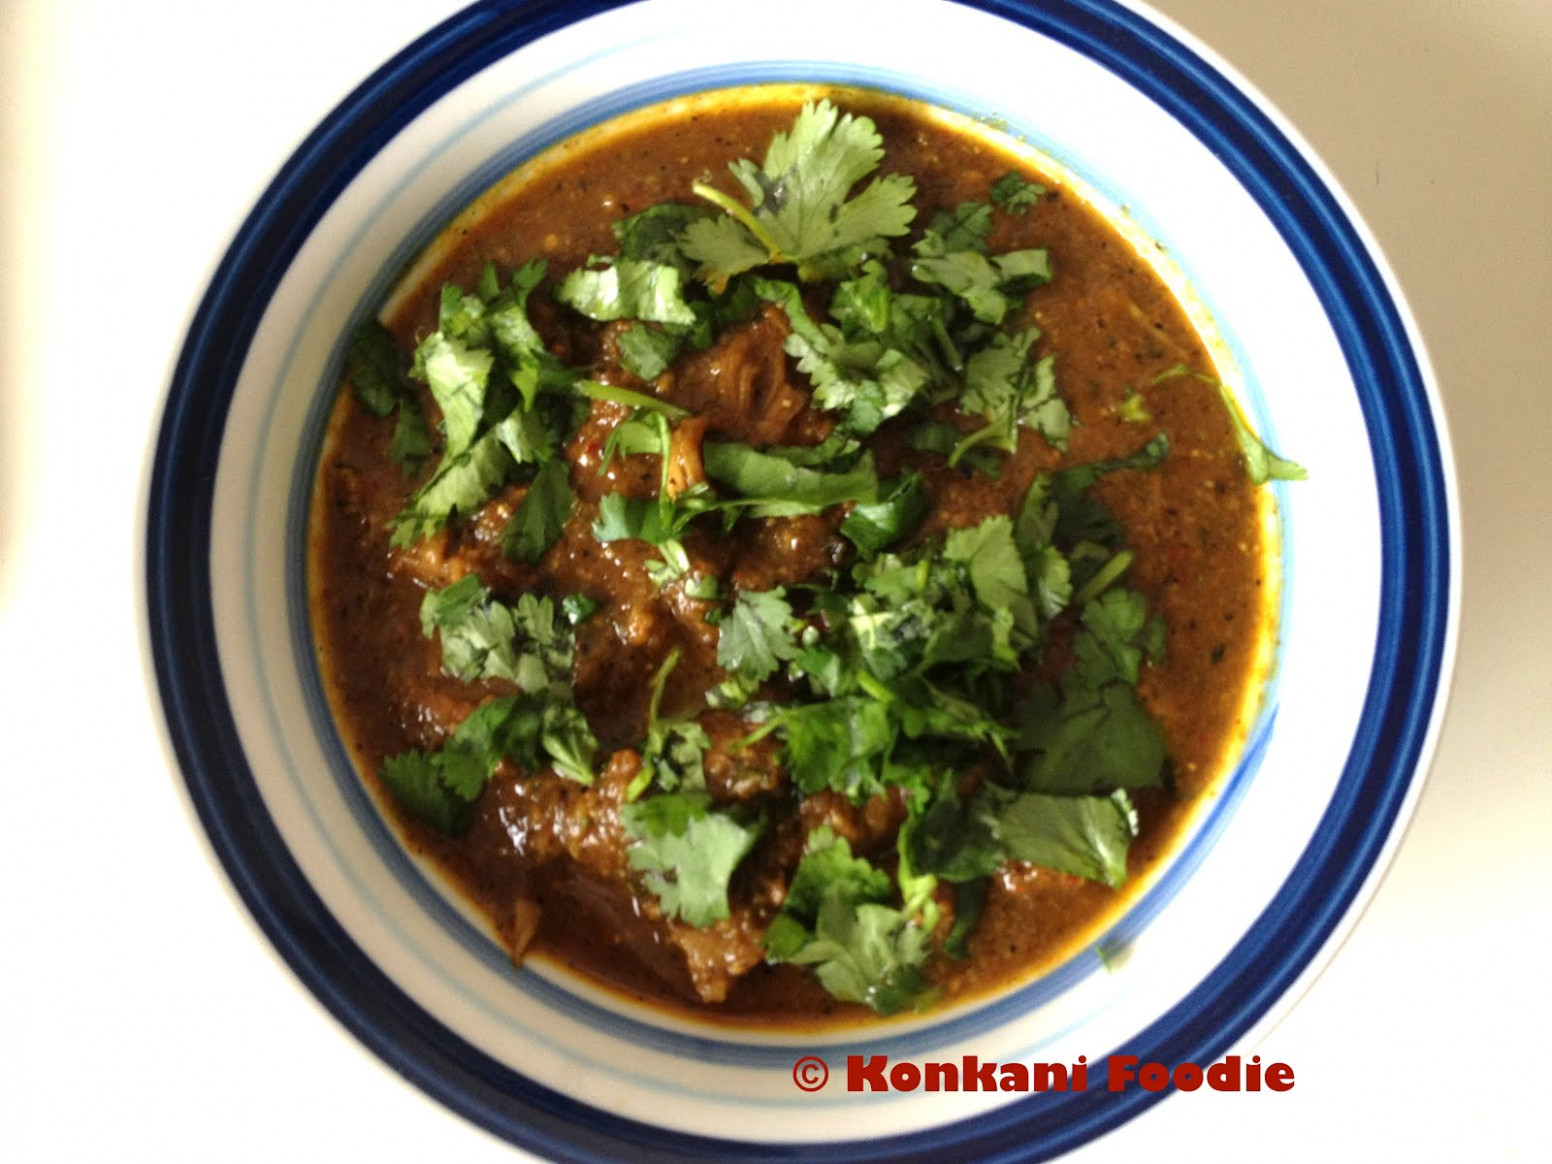 Konkani Foodie: Chicken Xacuti | Chicken Shaguti - chicken xacuti recipe in goa